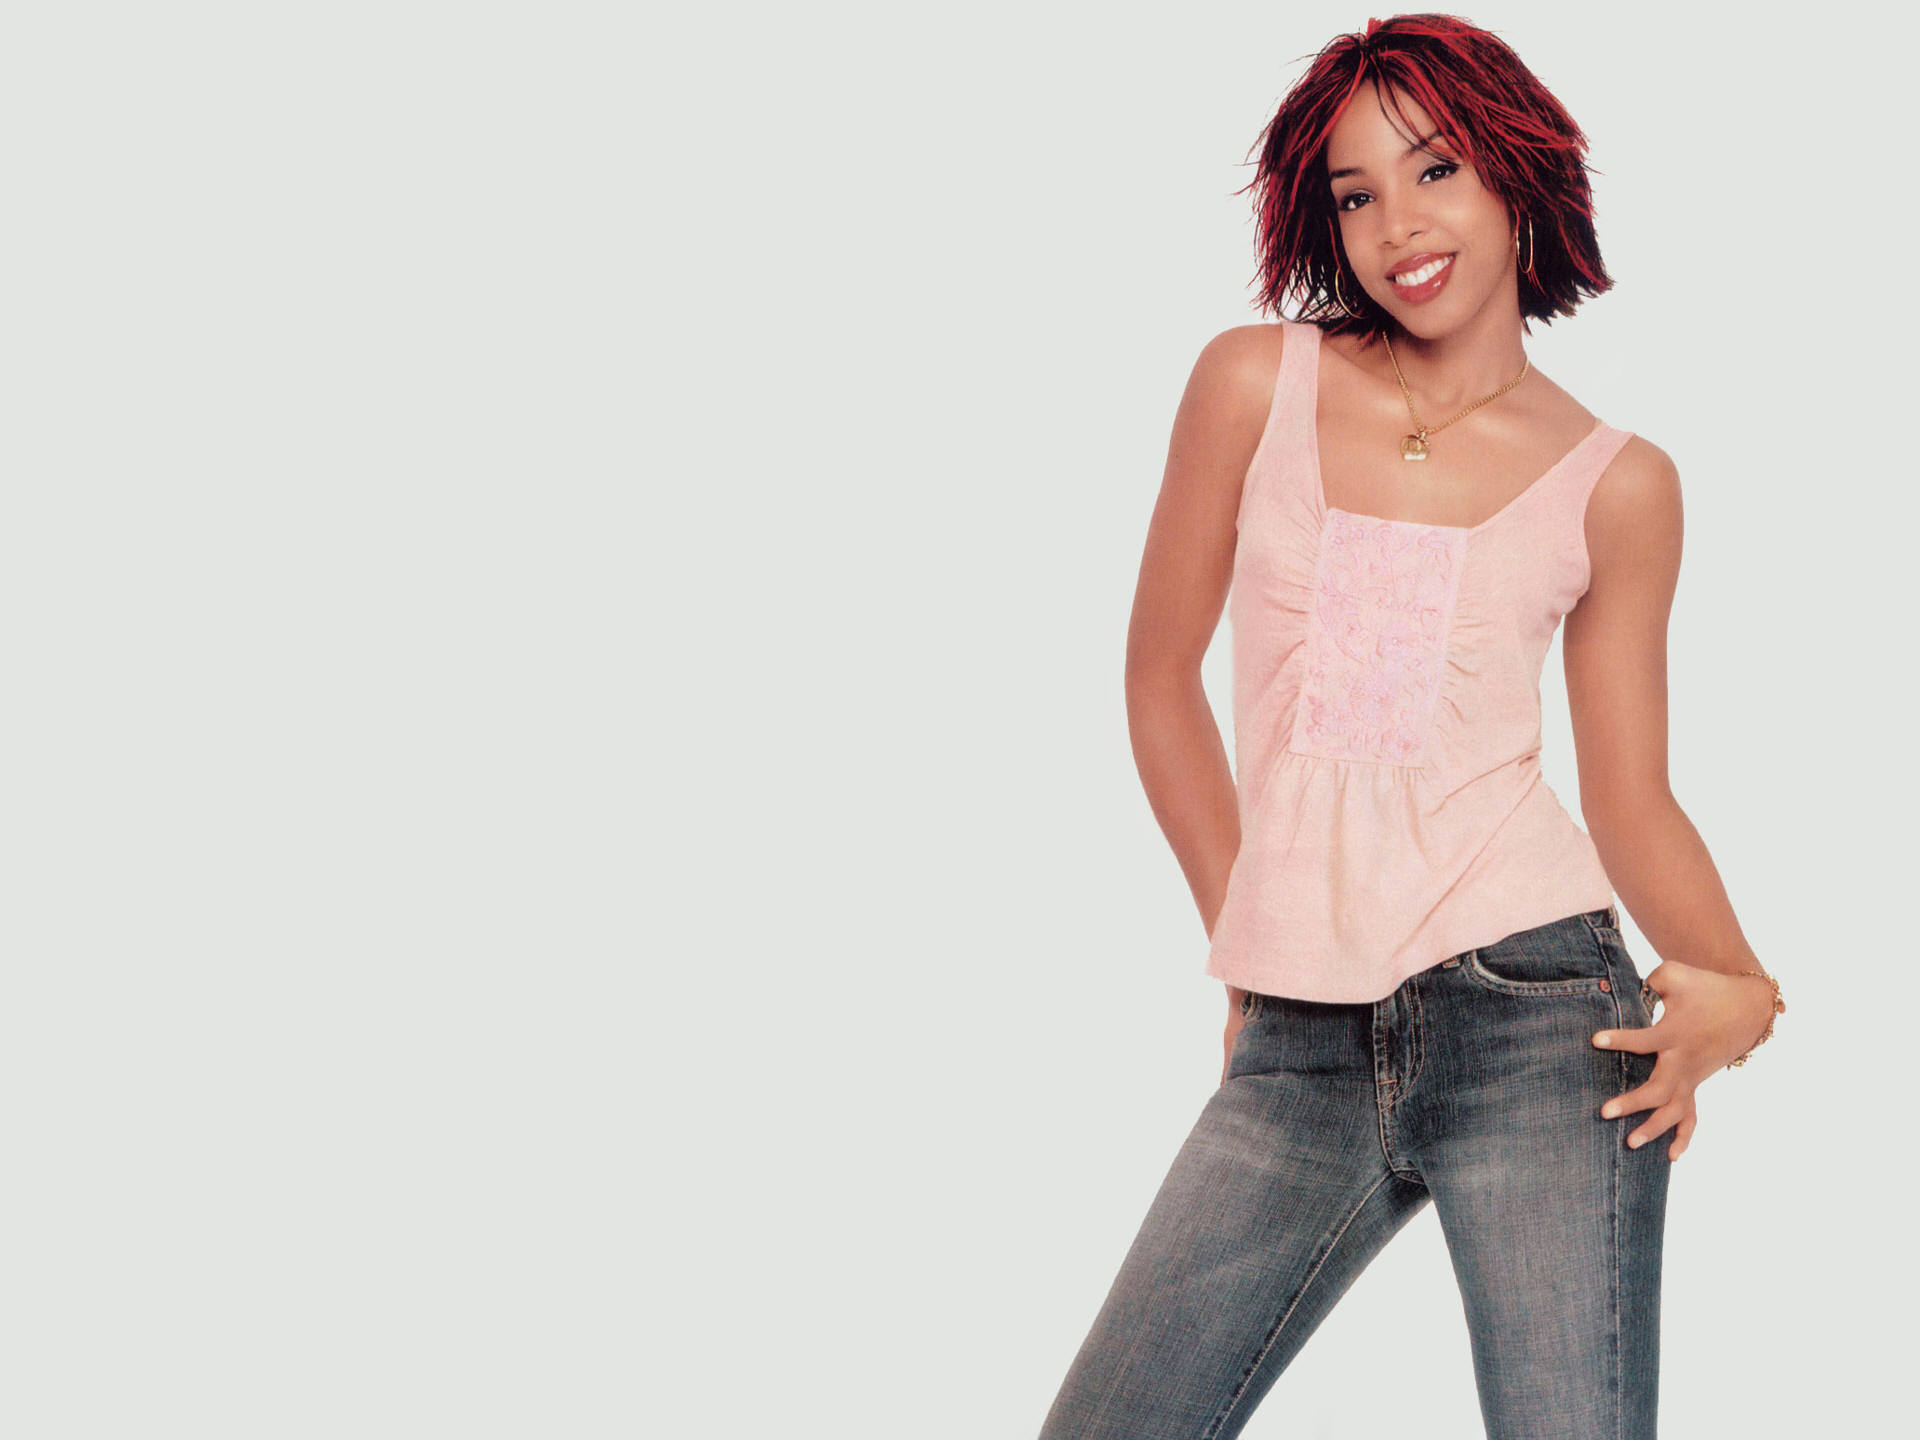 Kelly rowland images kelly hd wallpaper and background photos